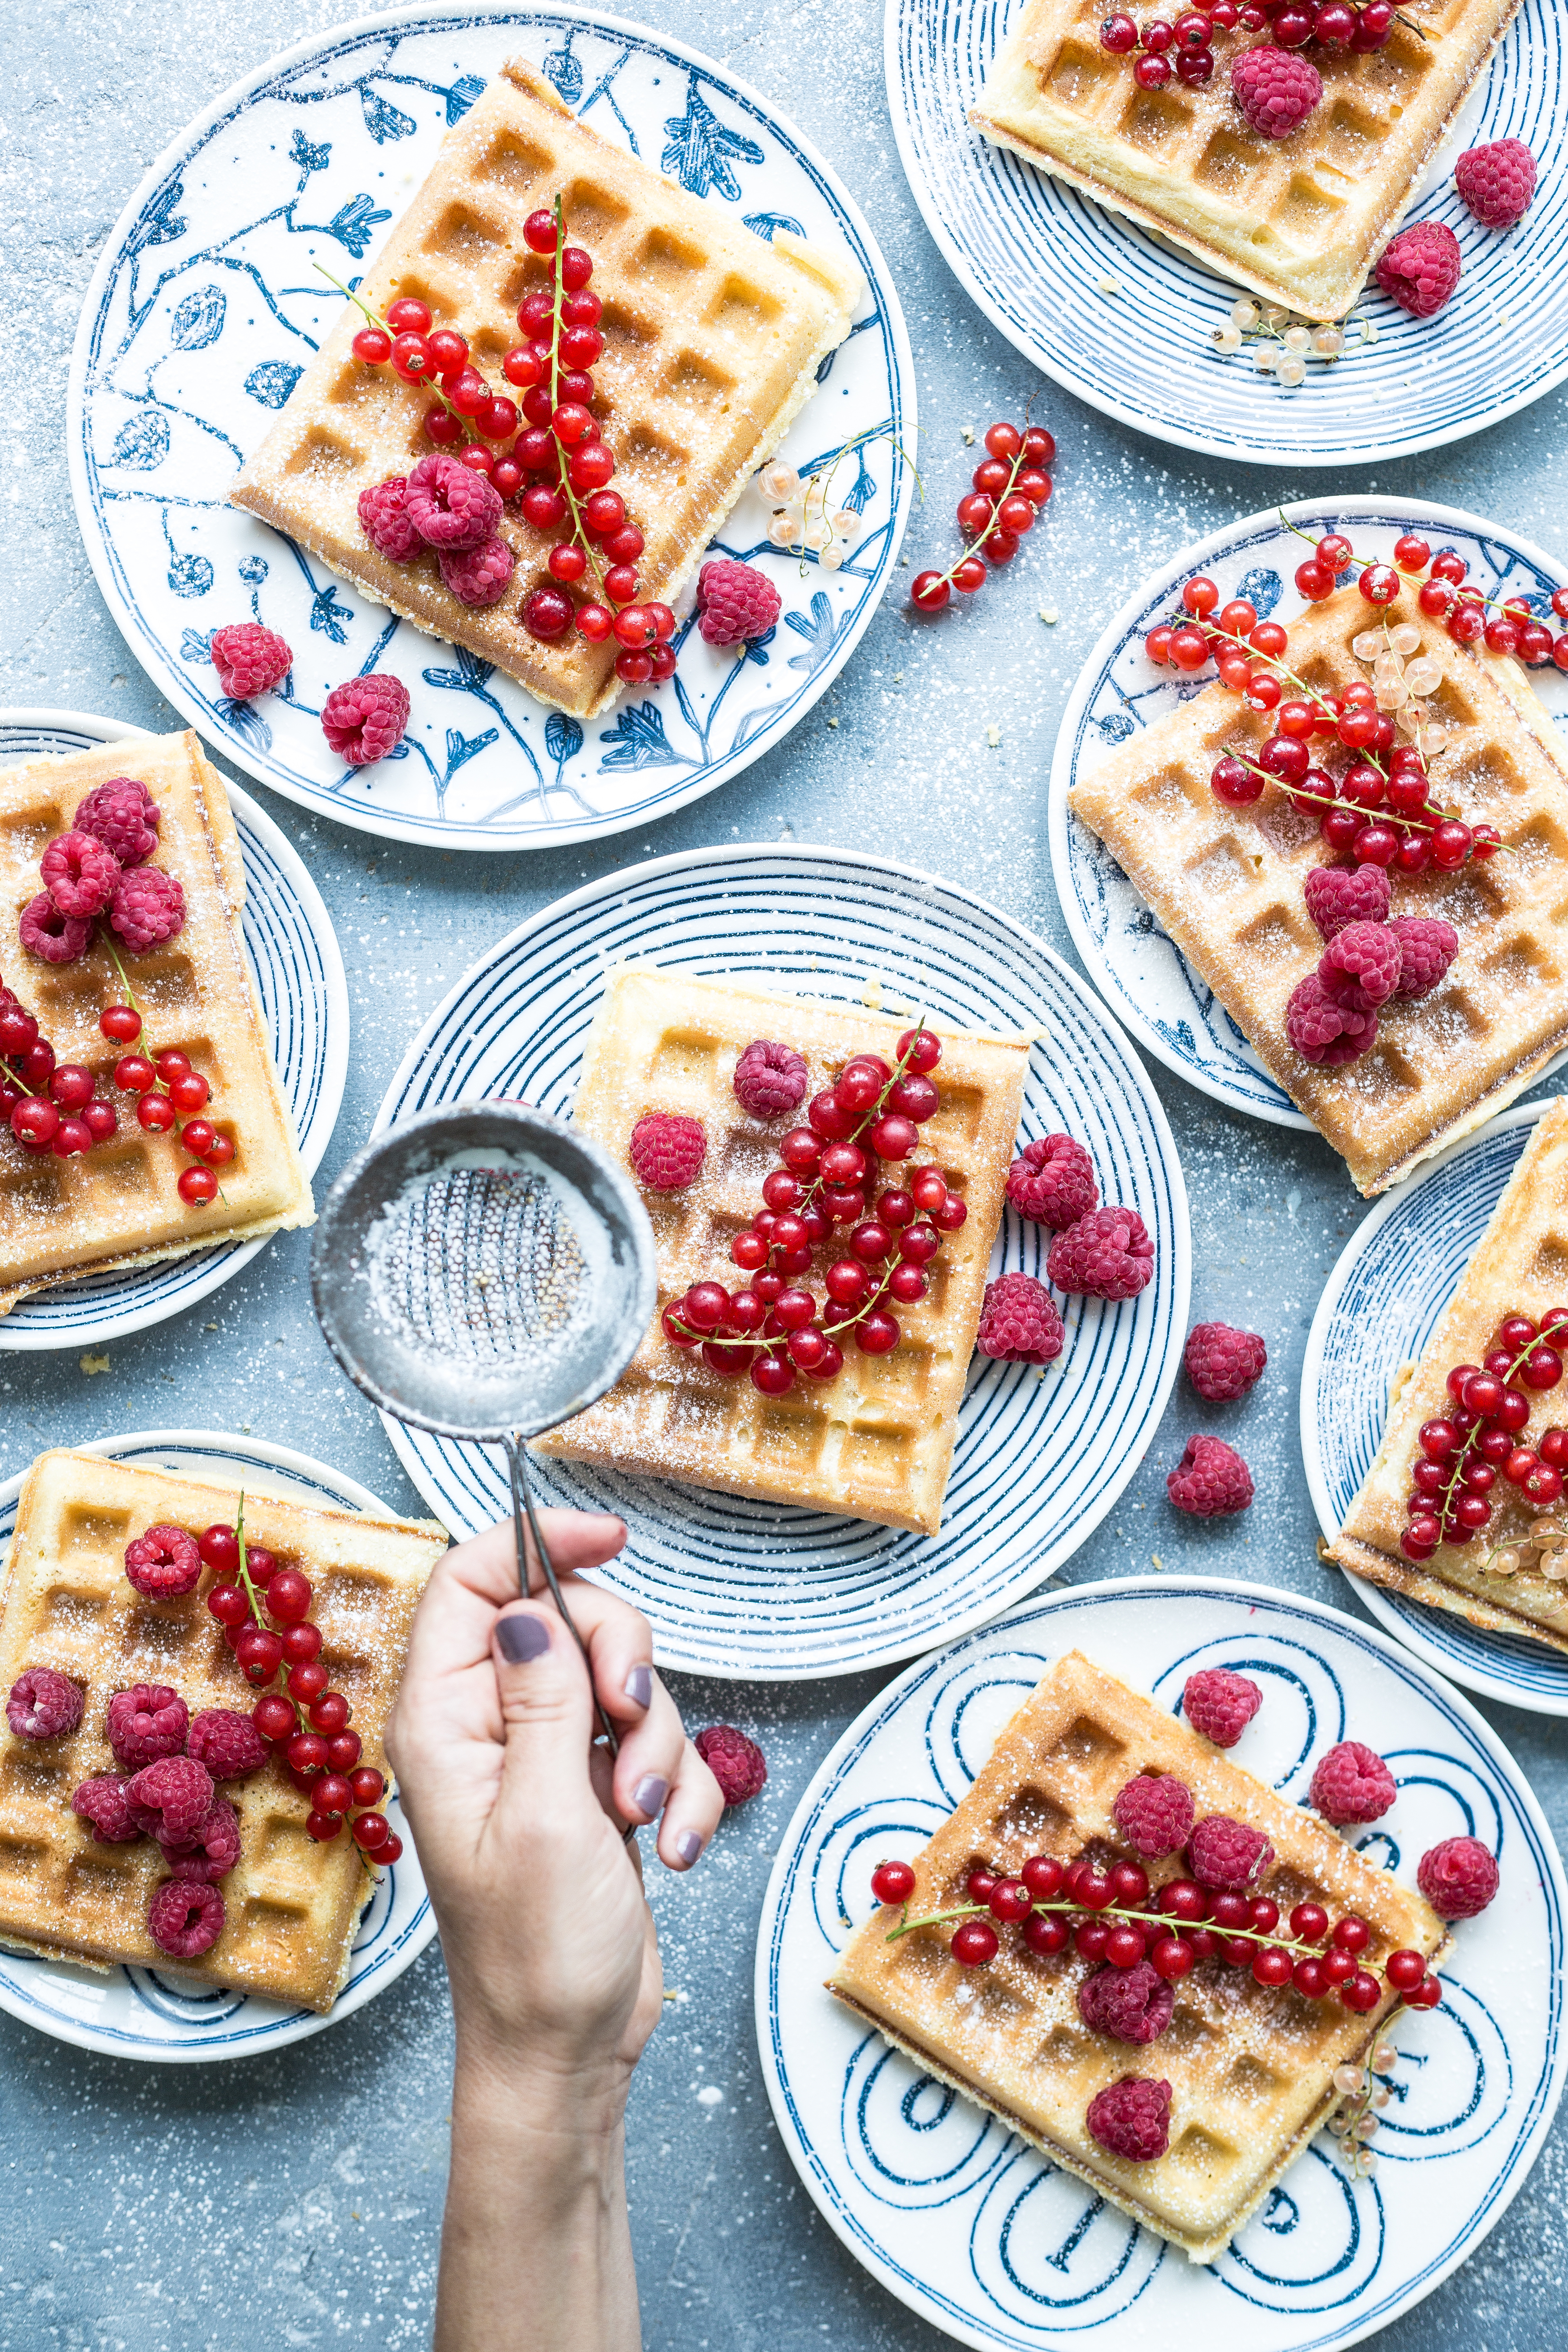 Slow mornings with Royal Doulton & Ellen DeGeneres collection + a recipe for PROPER WAFFLES – Bea's cookbook